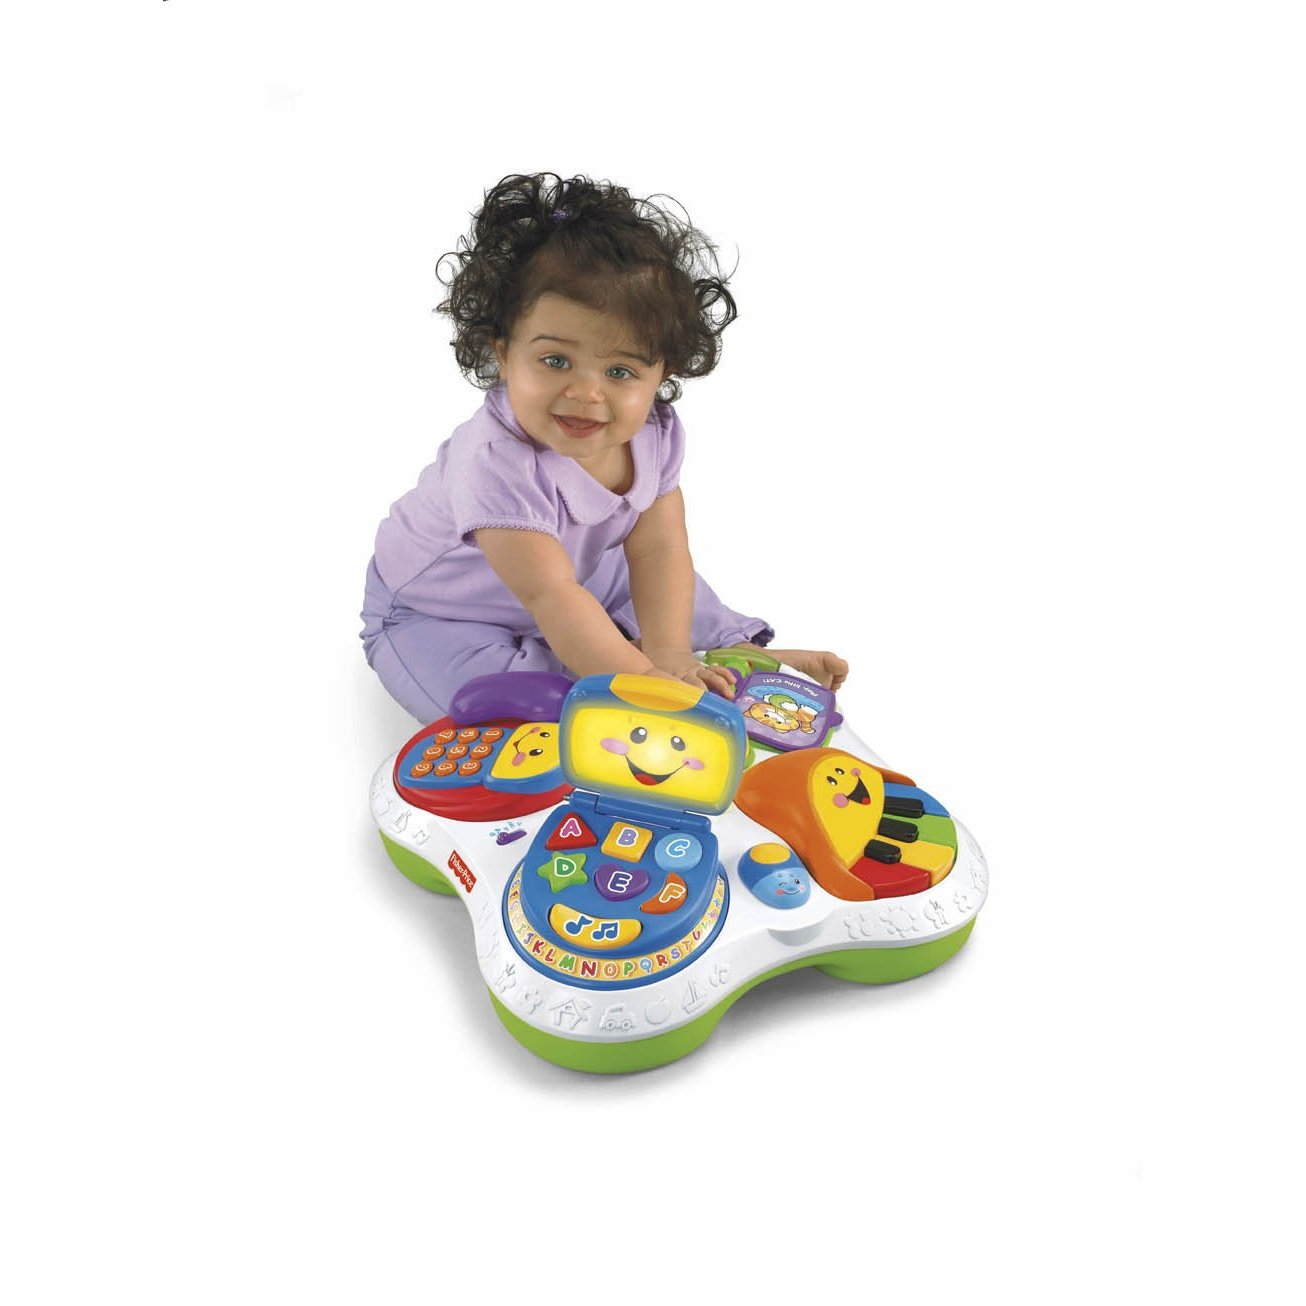 SPECIAL TOYS SHOP: Fisher-Price Infant Learning Table Bi-Gual